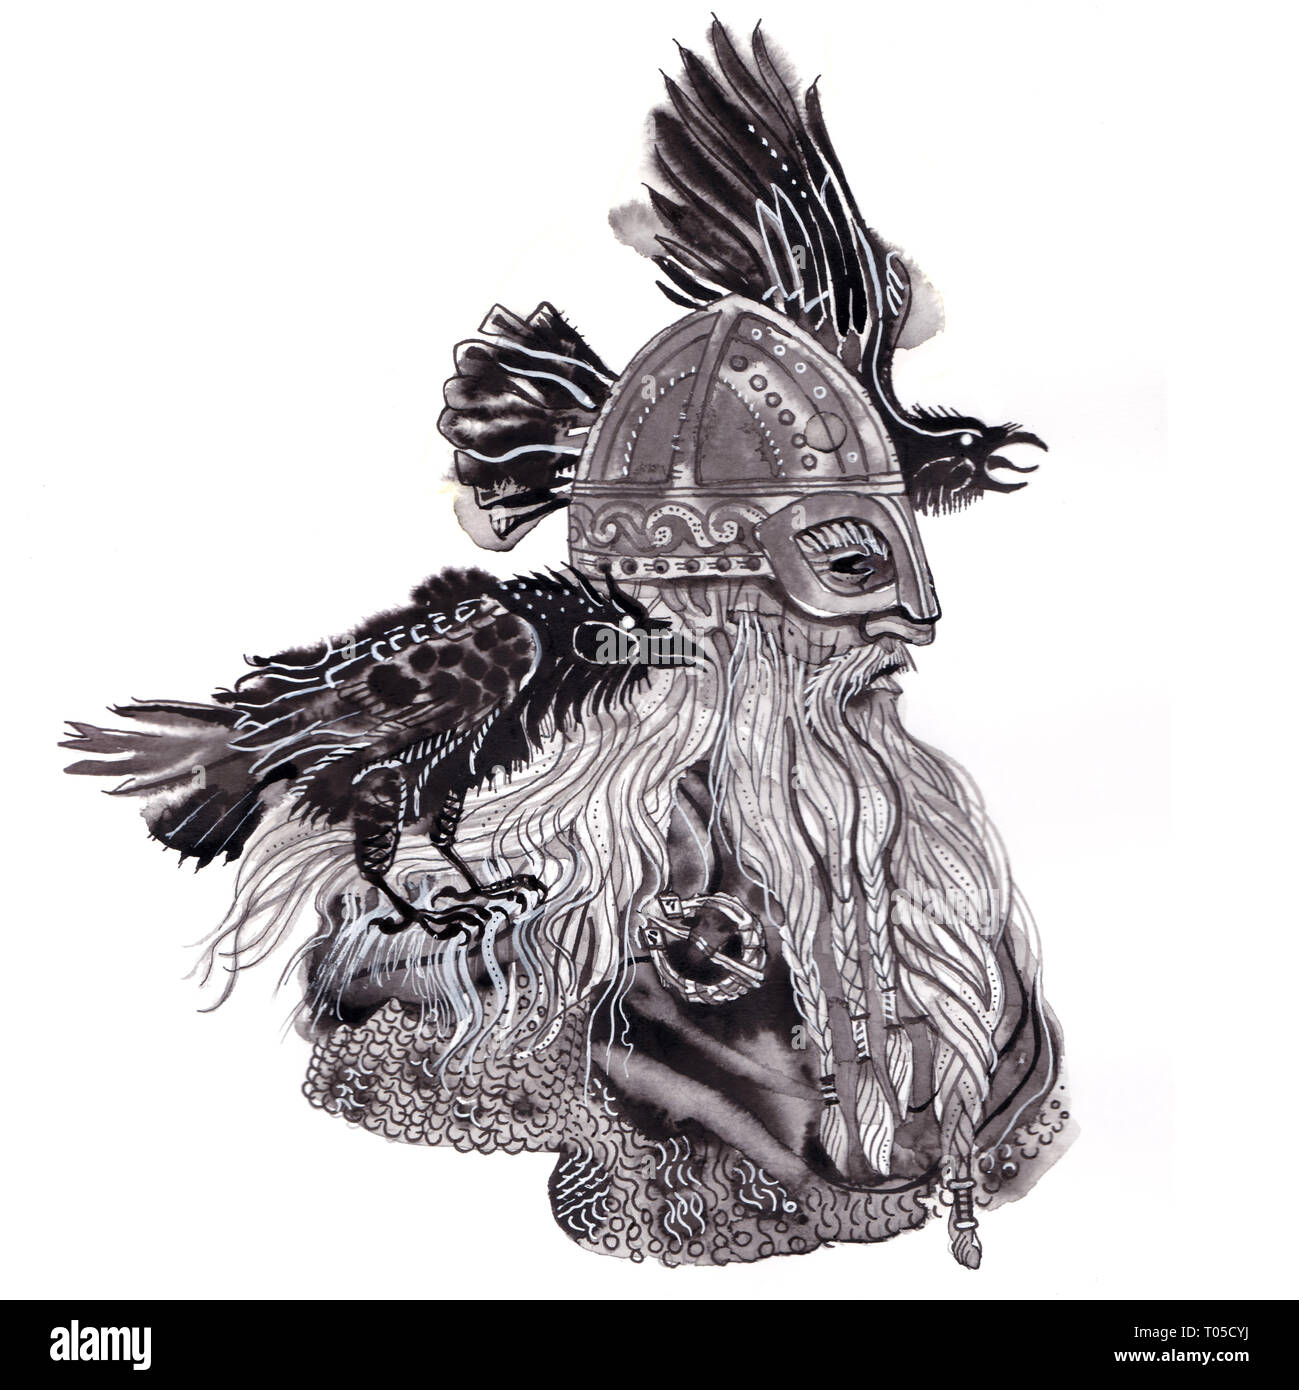 Portrait of Scandinavian god Odin in viking helmet with two ravens. Sketchy expressive artistic style hand drawn ink and brush illustration. Norse - Stock Image